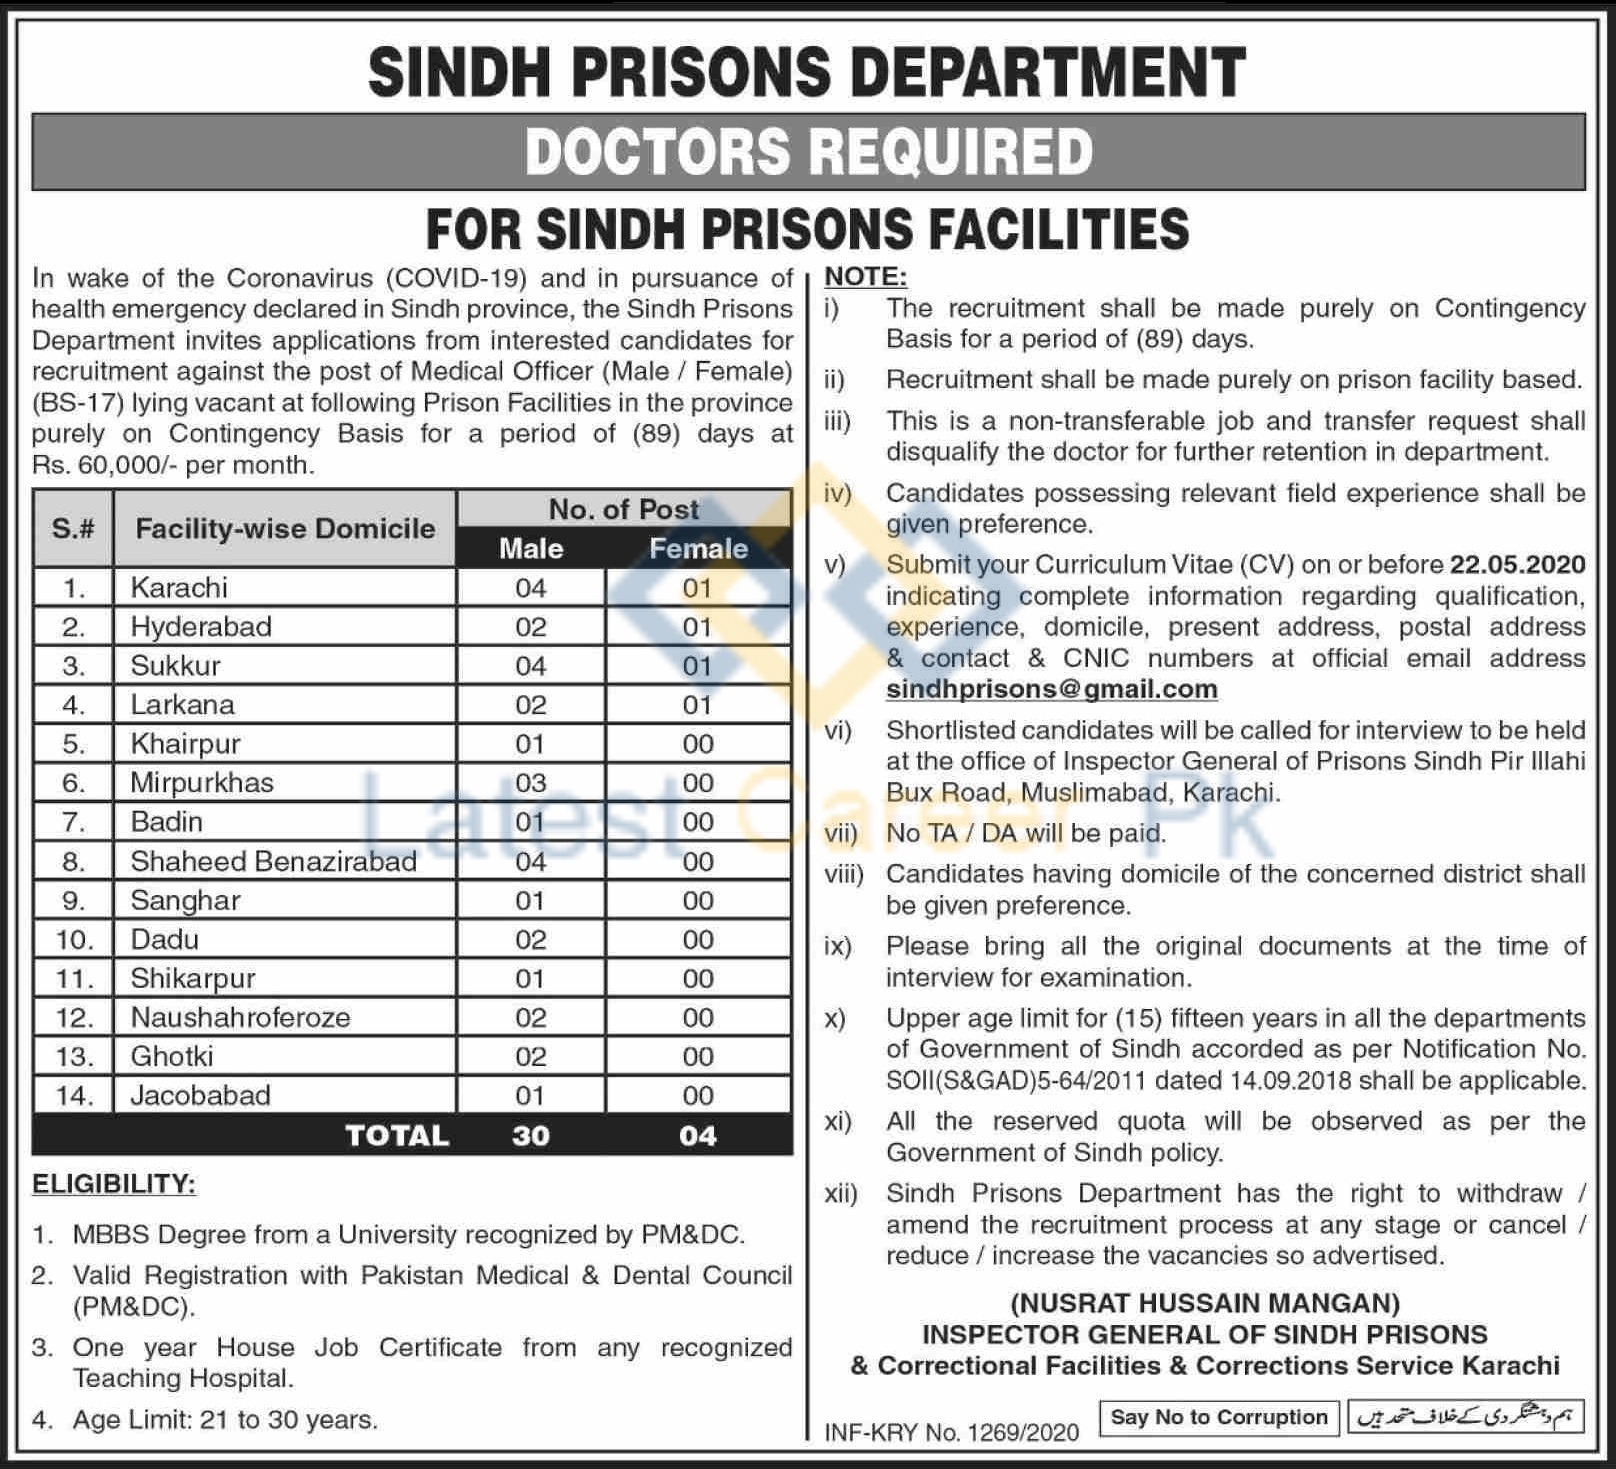 Government-of-Sindh-Prisons-Department-Sindh-Jobs-19-May-2020